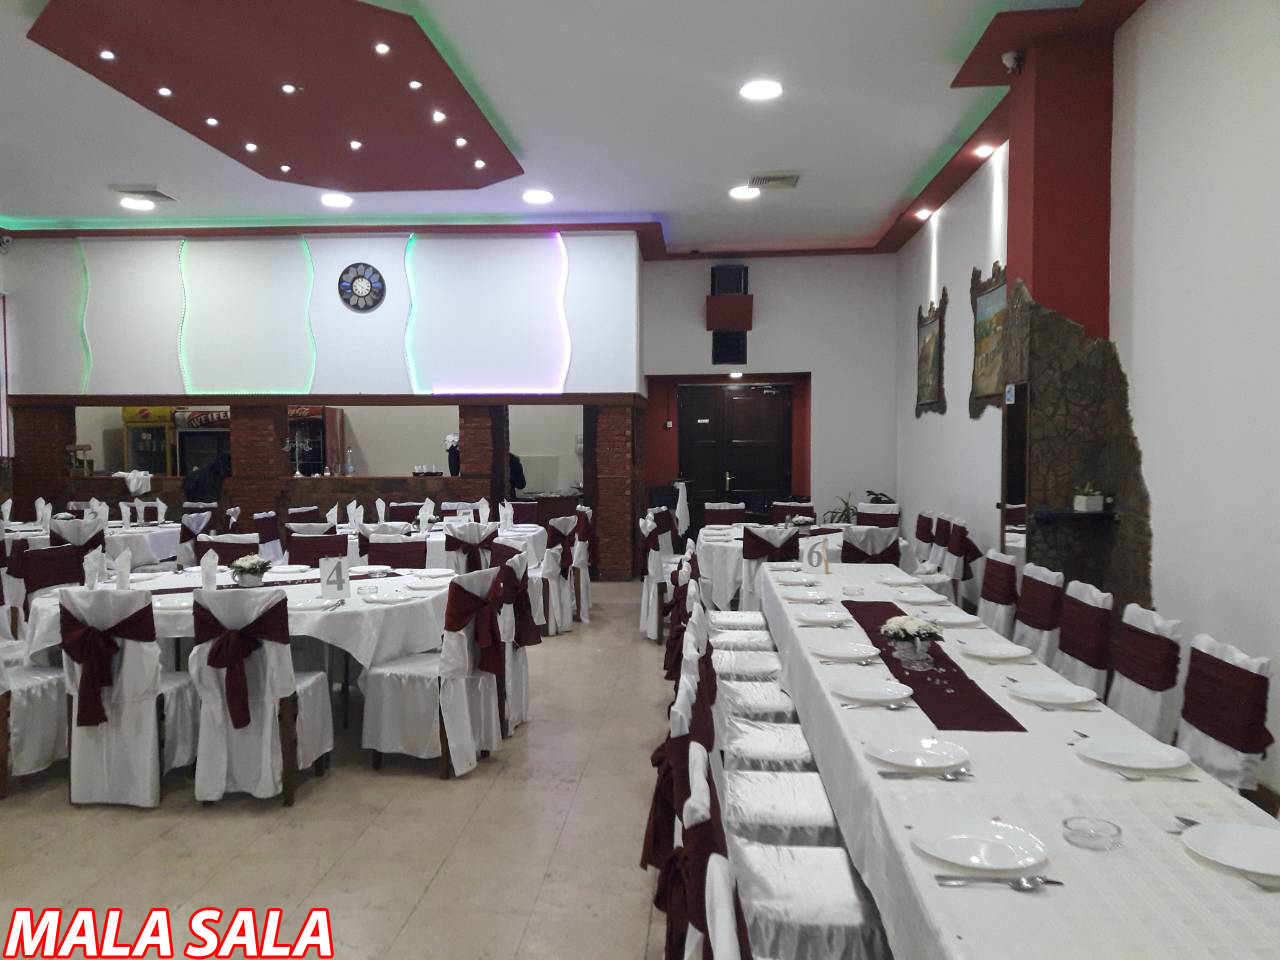 GRAND HALL KACAREVO AND CAFFE GRILL TICINO Renting halls Pancevo - Photo 4